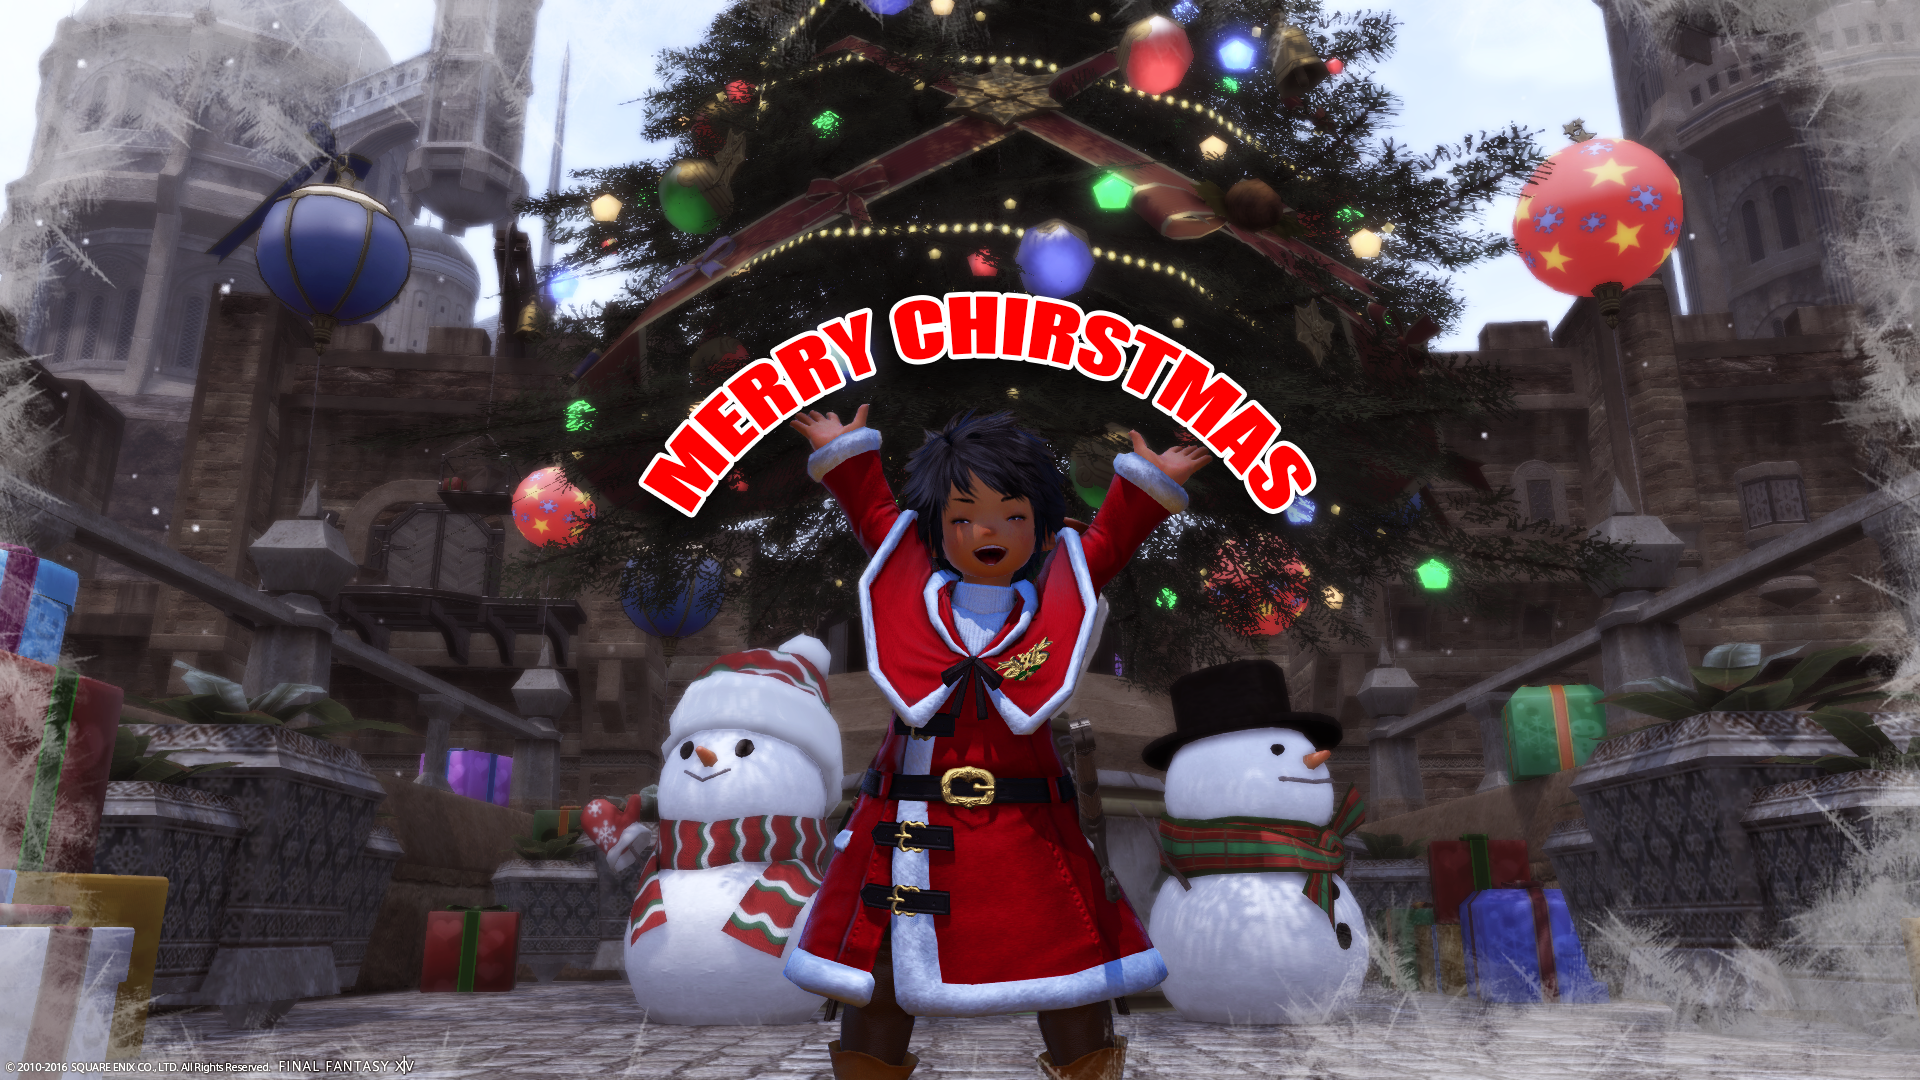 Final Fantasy Christmas.Steam Community Merry Christmas From Eorzea